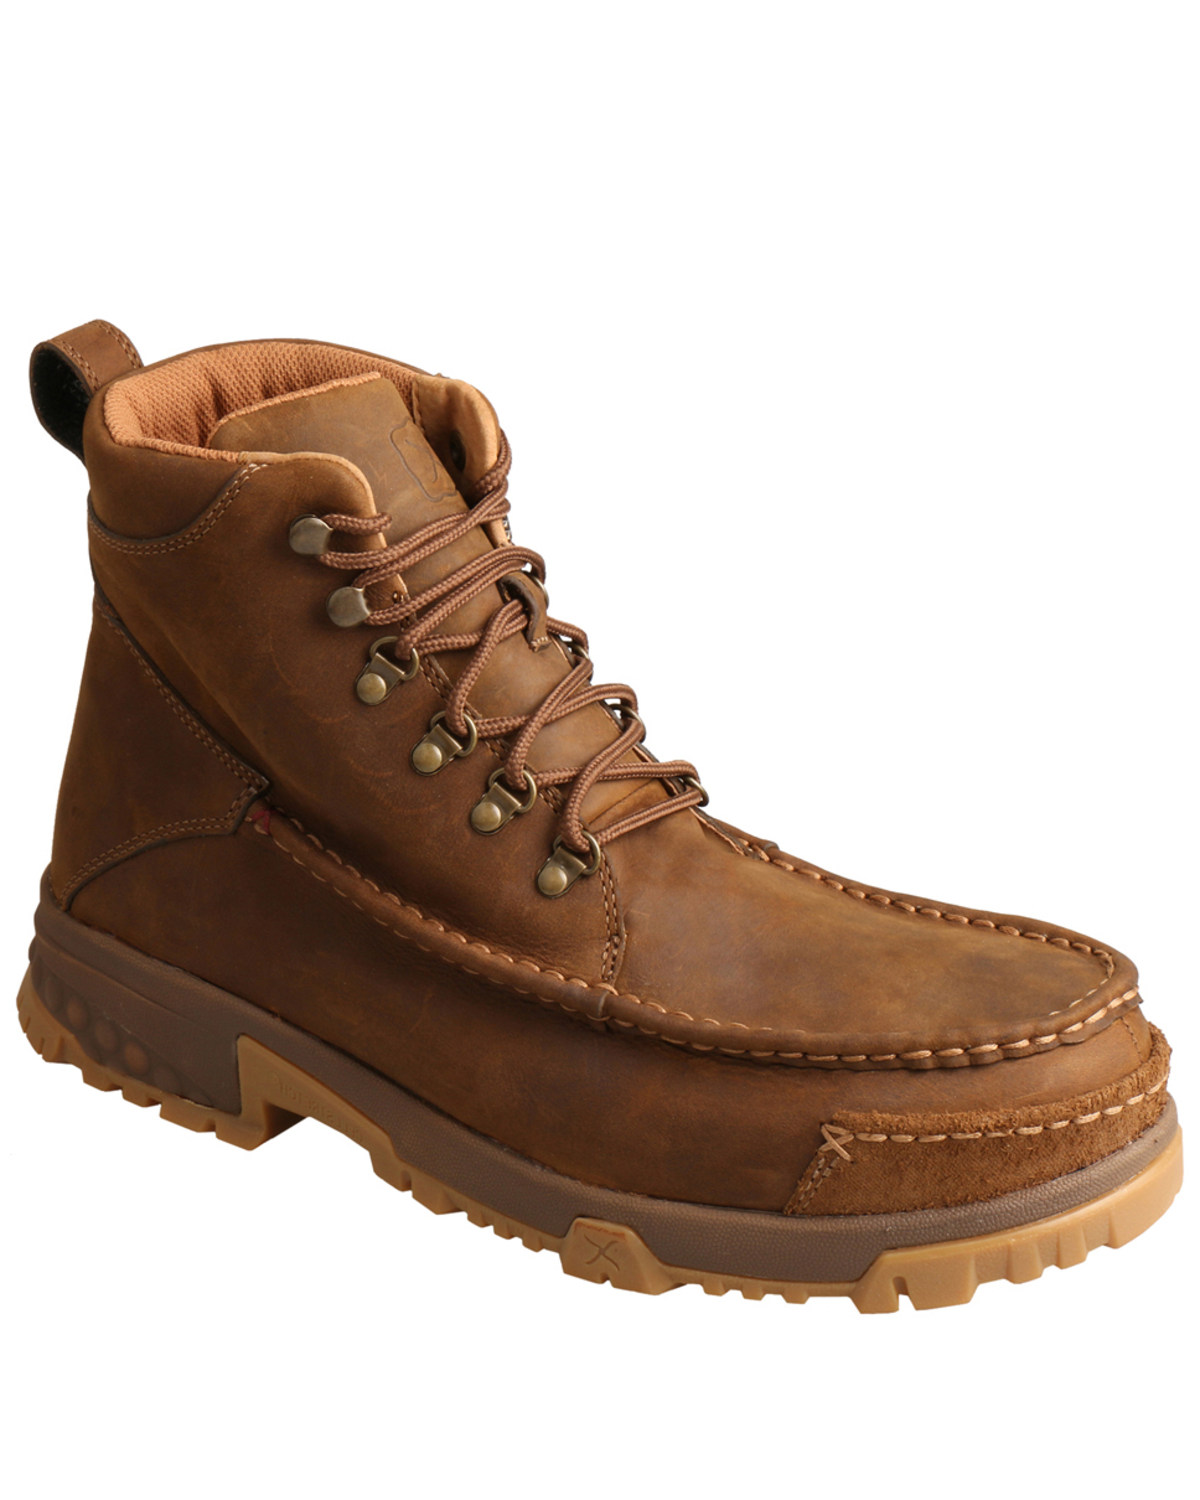 Work Boots - Composite Toe | Boot Barn